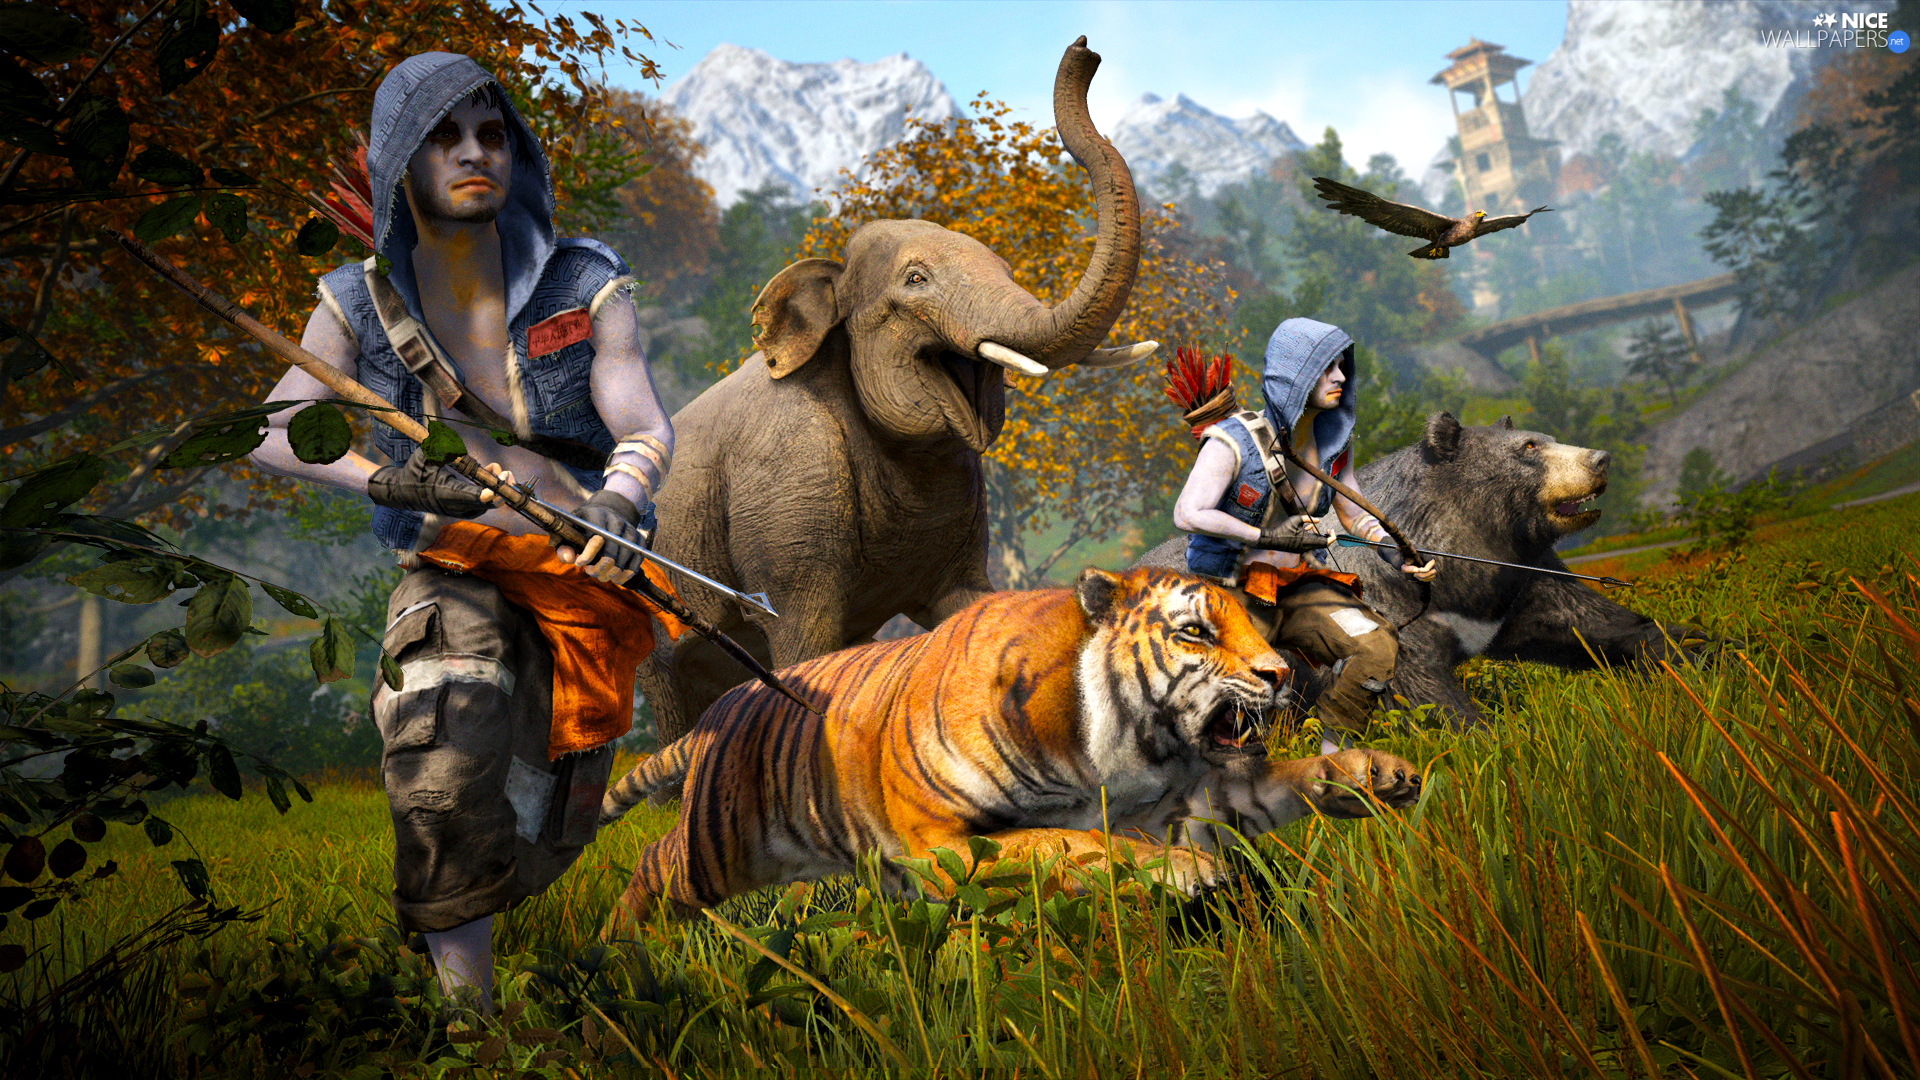 animals, Elephant, Characters, tiger, armed, Far Cry 4, game, Bear